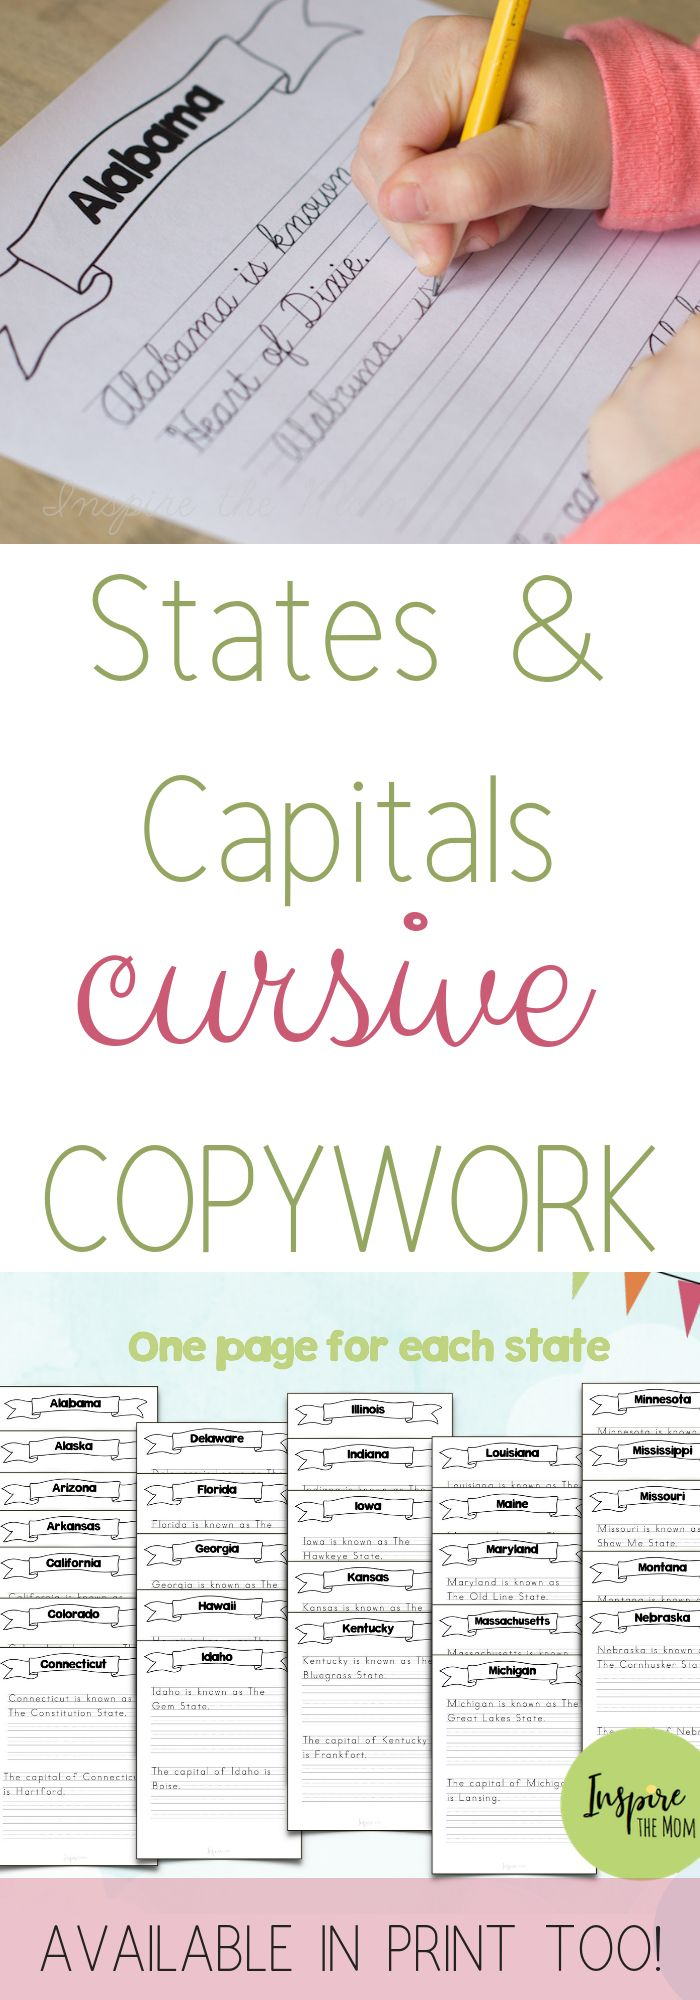 states and capitals print and cursive copywork copywork notebooking and handwriting states. Black Bedroom Furniture Sets. Home Design Ideas